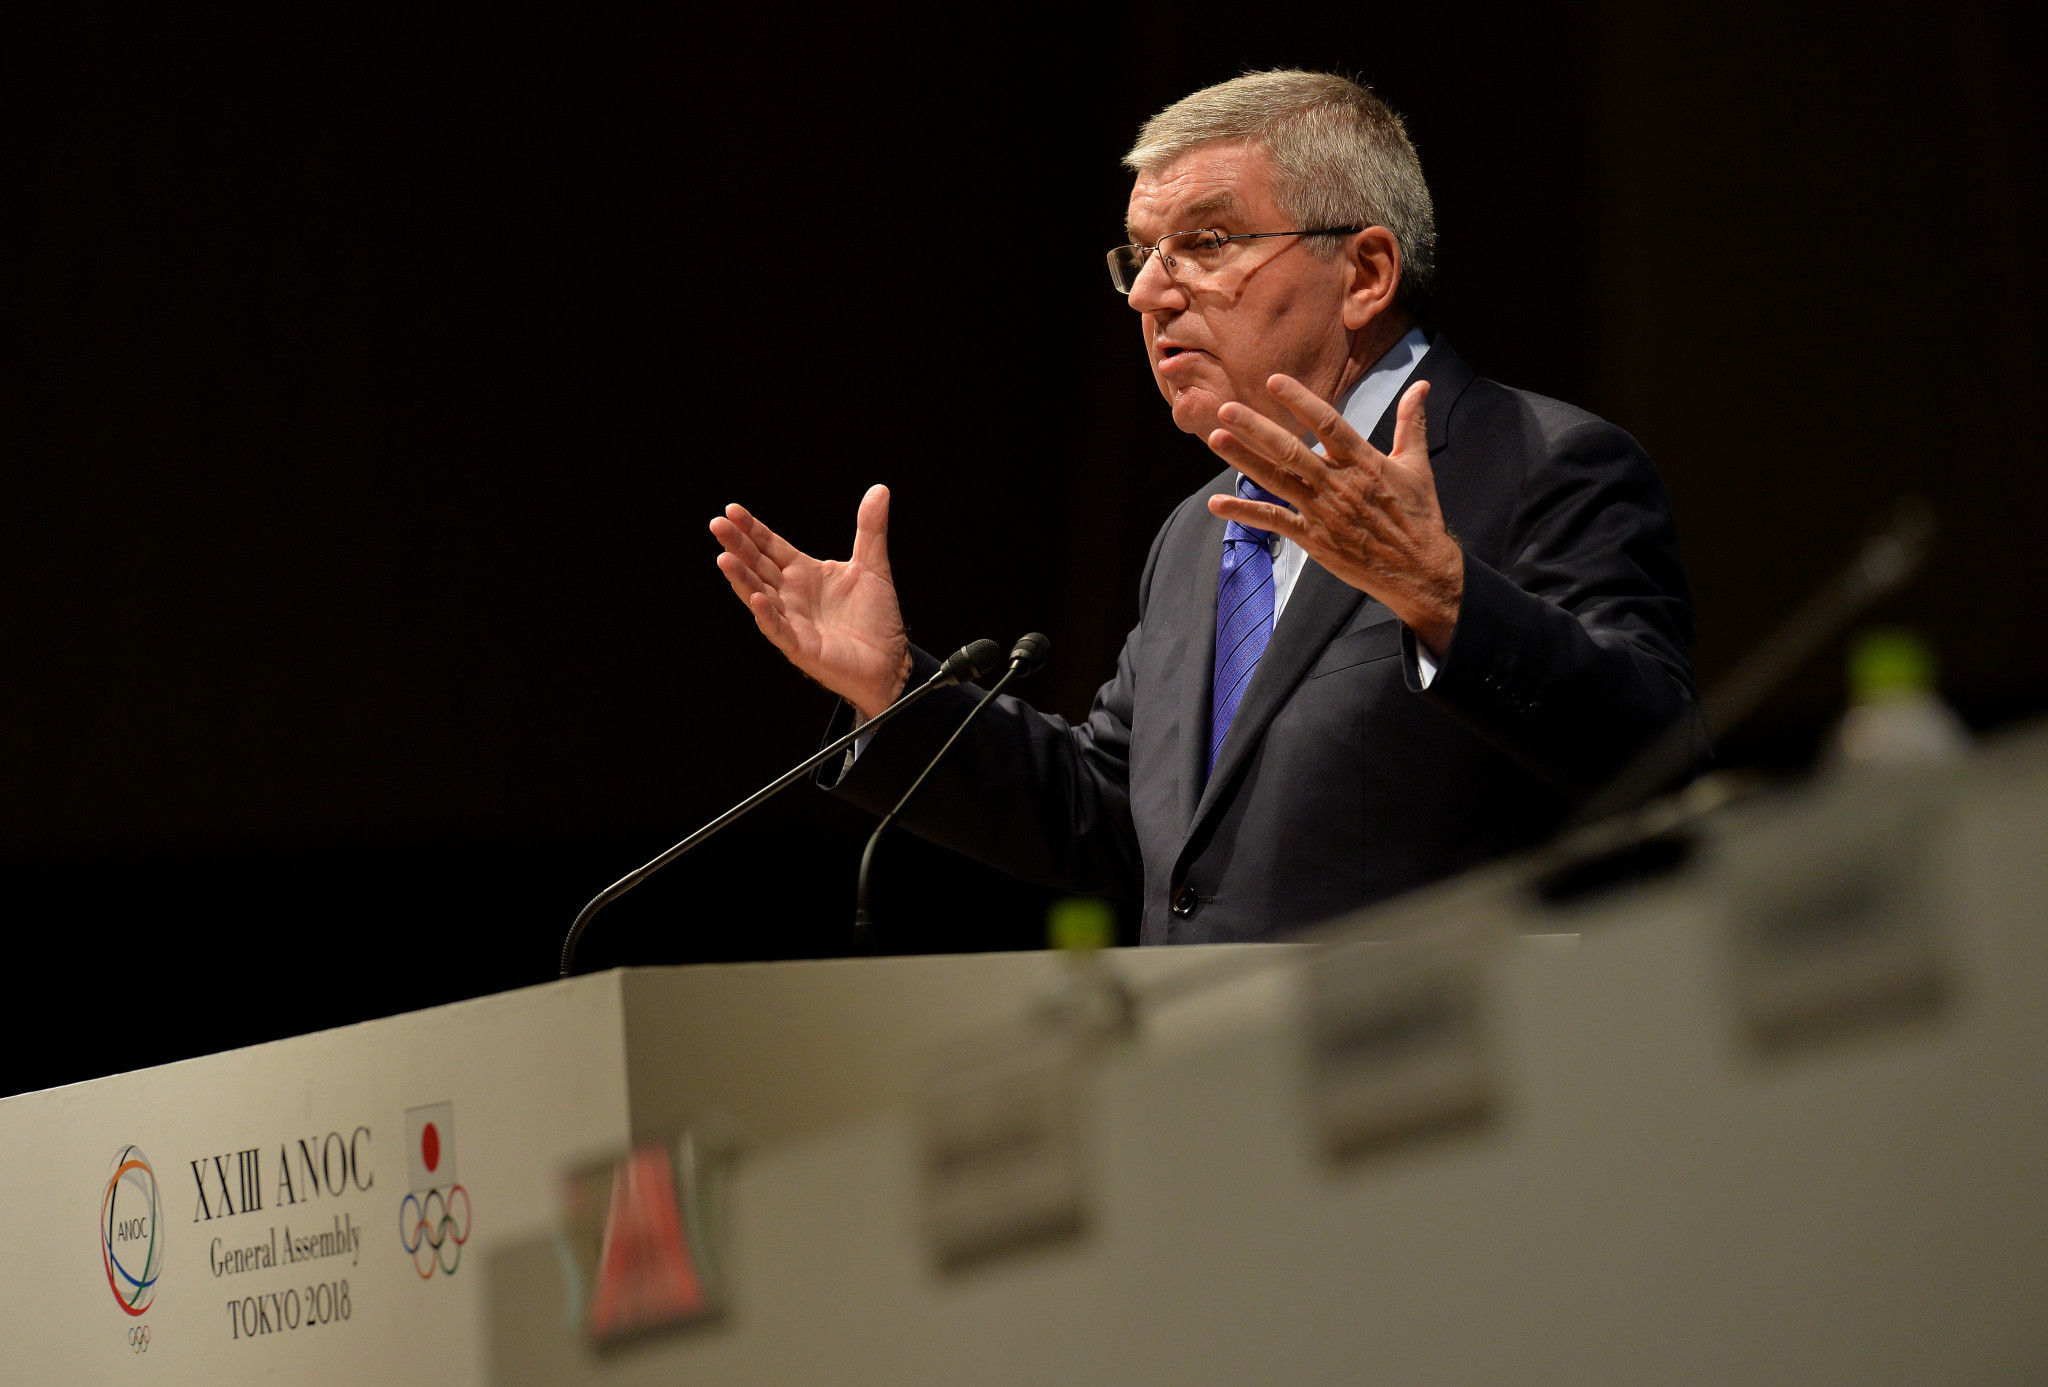 Bach keynote speech headlines second day of ANOC General Assembly